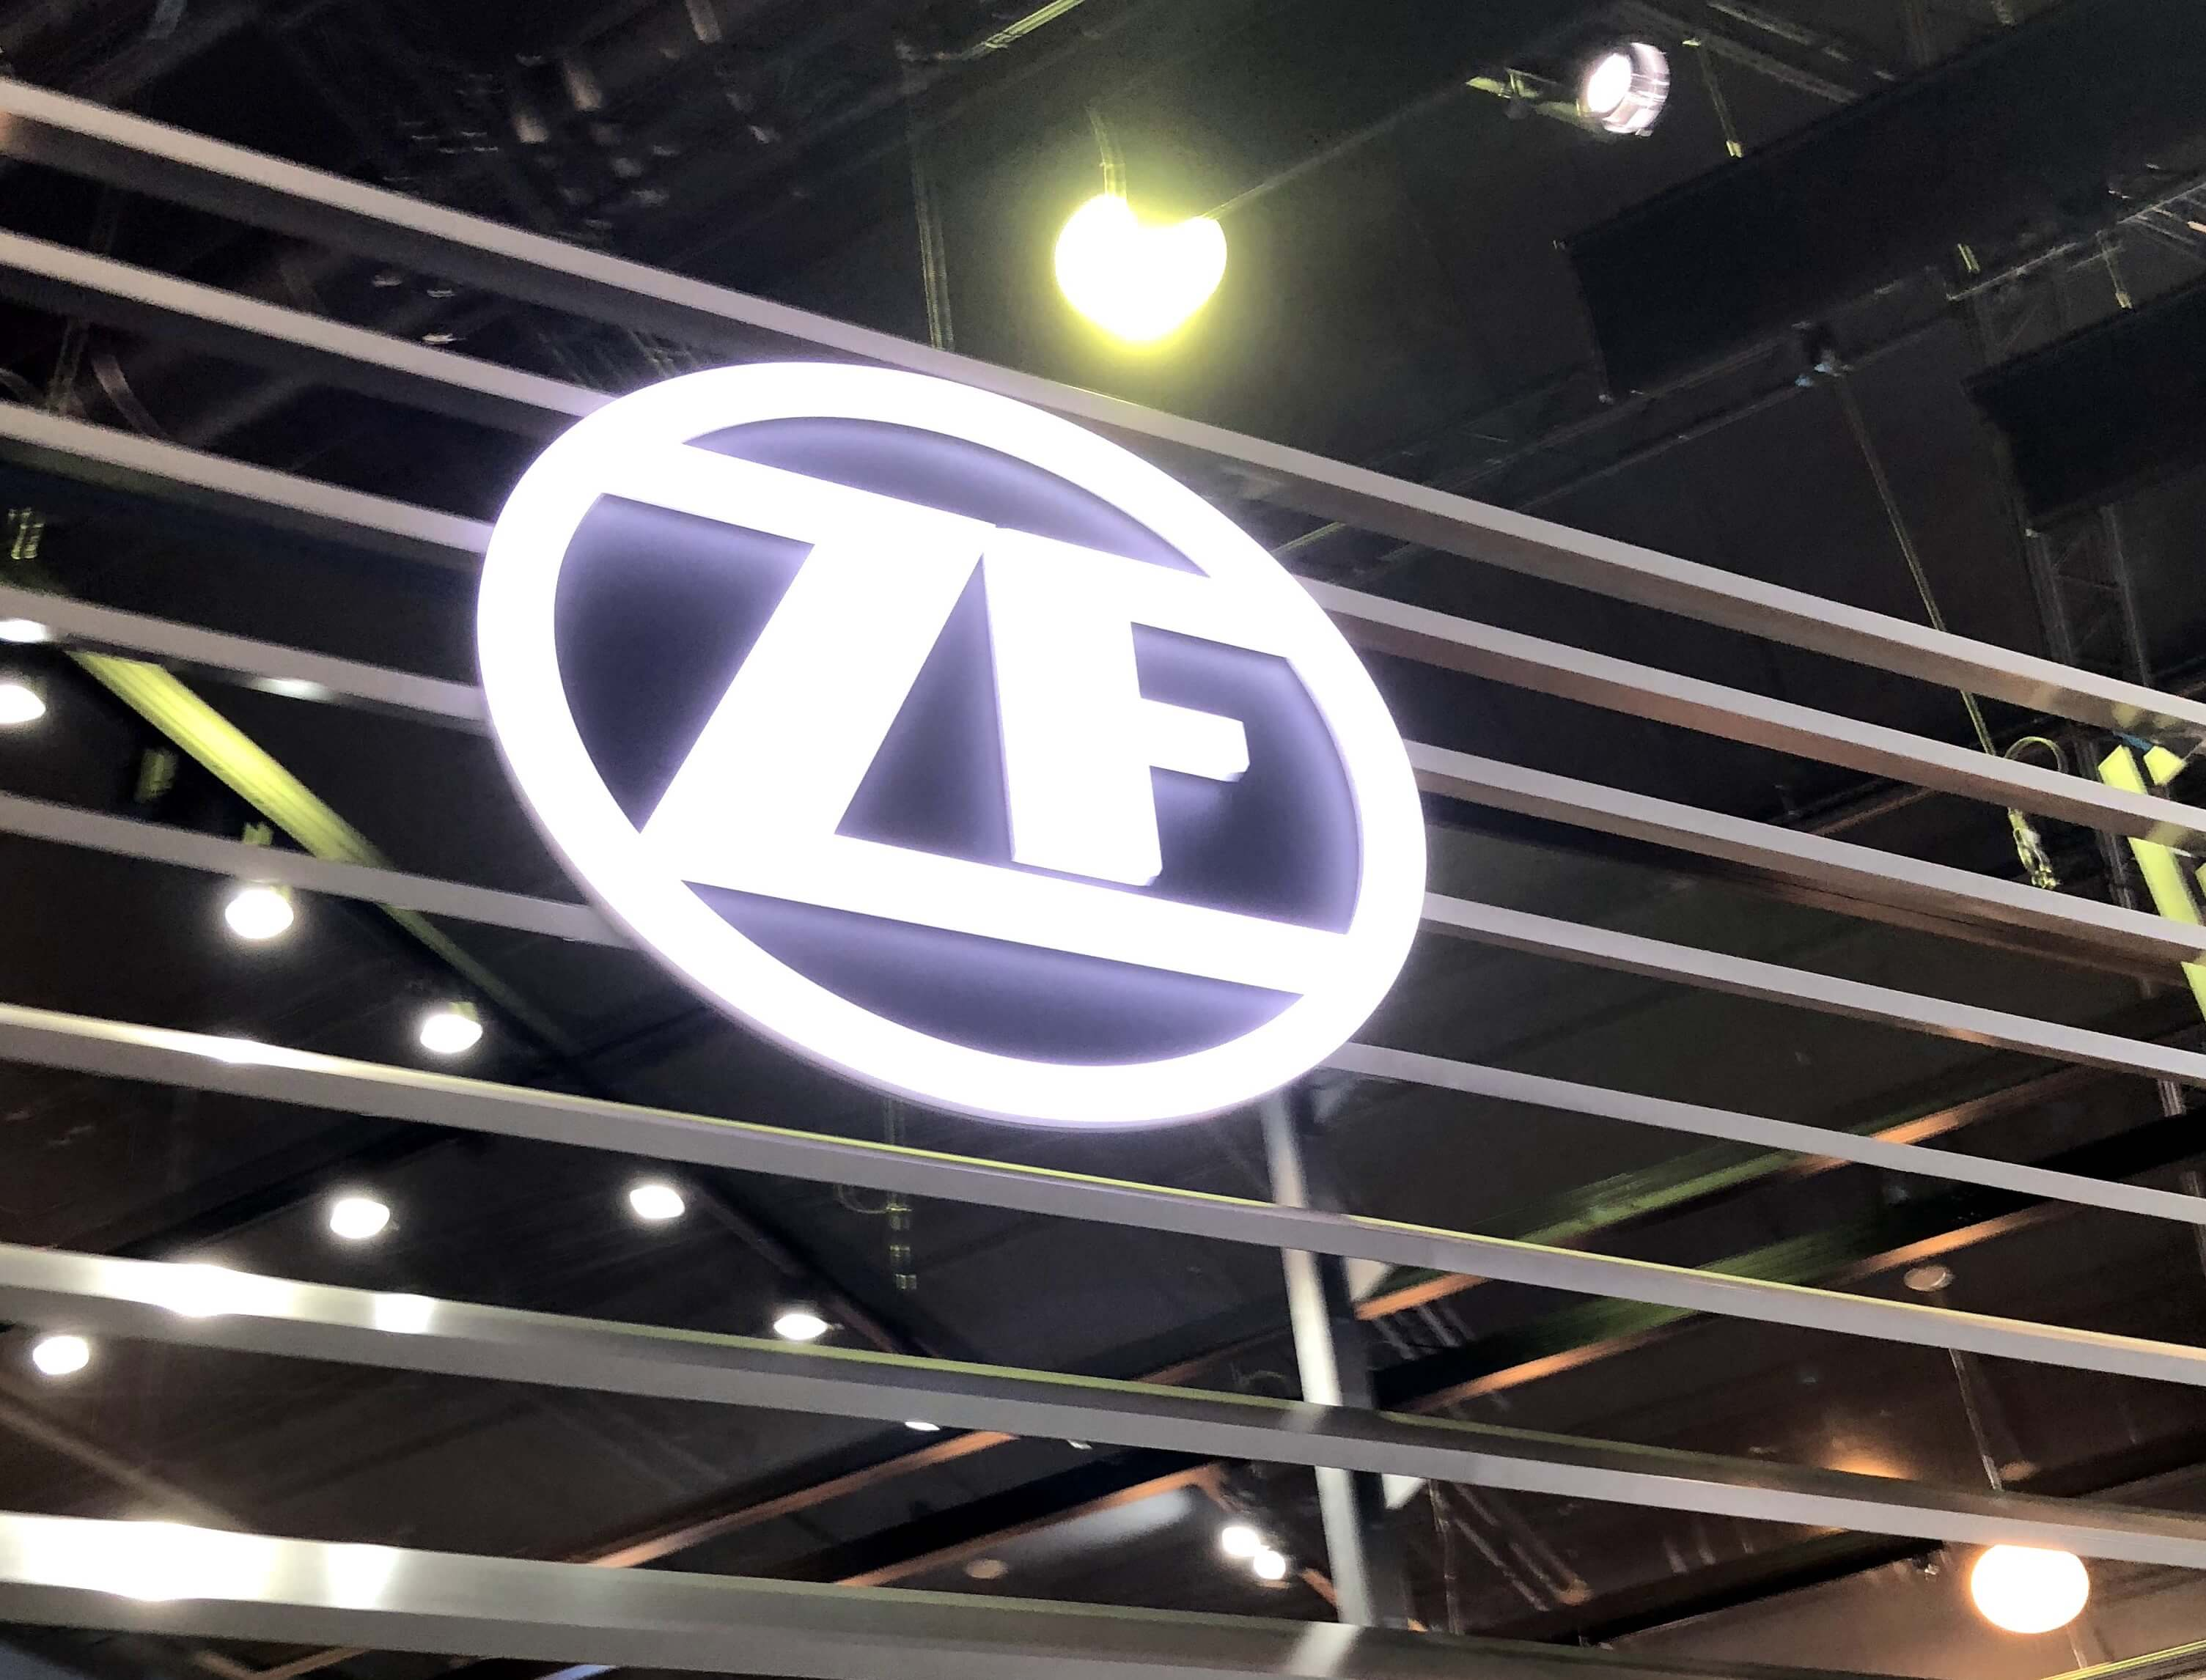 ZF Aftermarket Division at Automechanica Frankfurt 2018